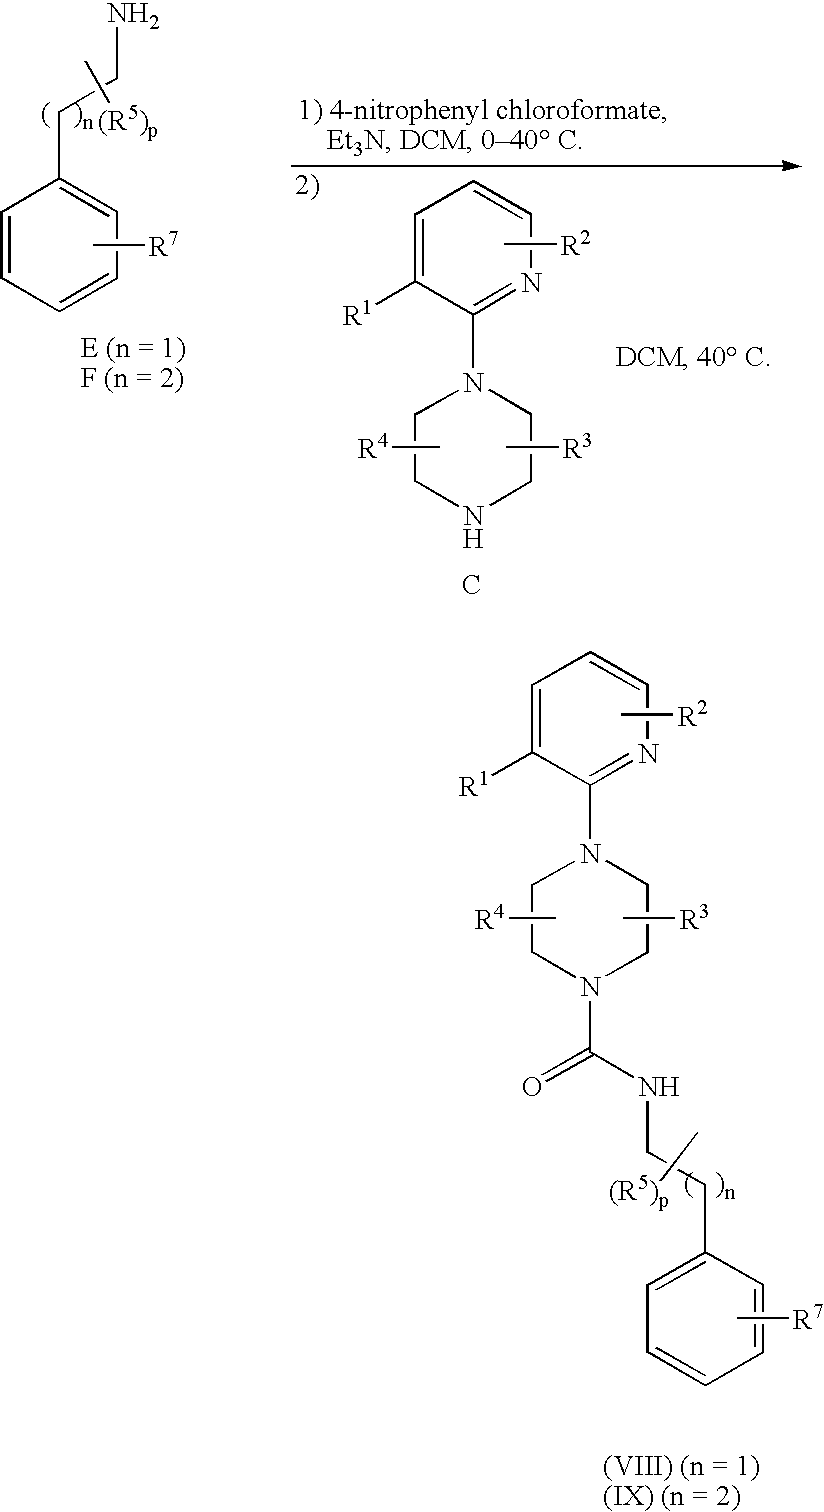 US7256193B2 - Therapeutic agents useful for treating pain